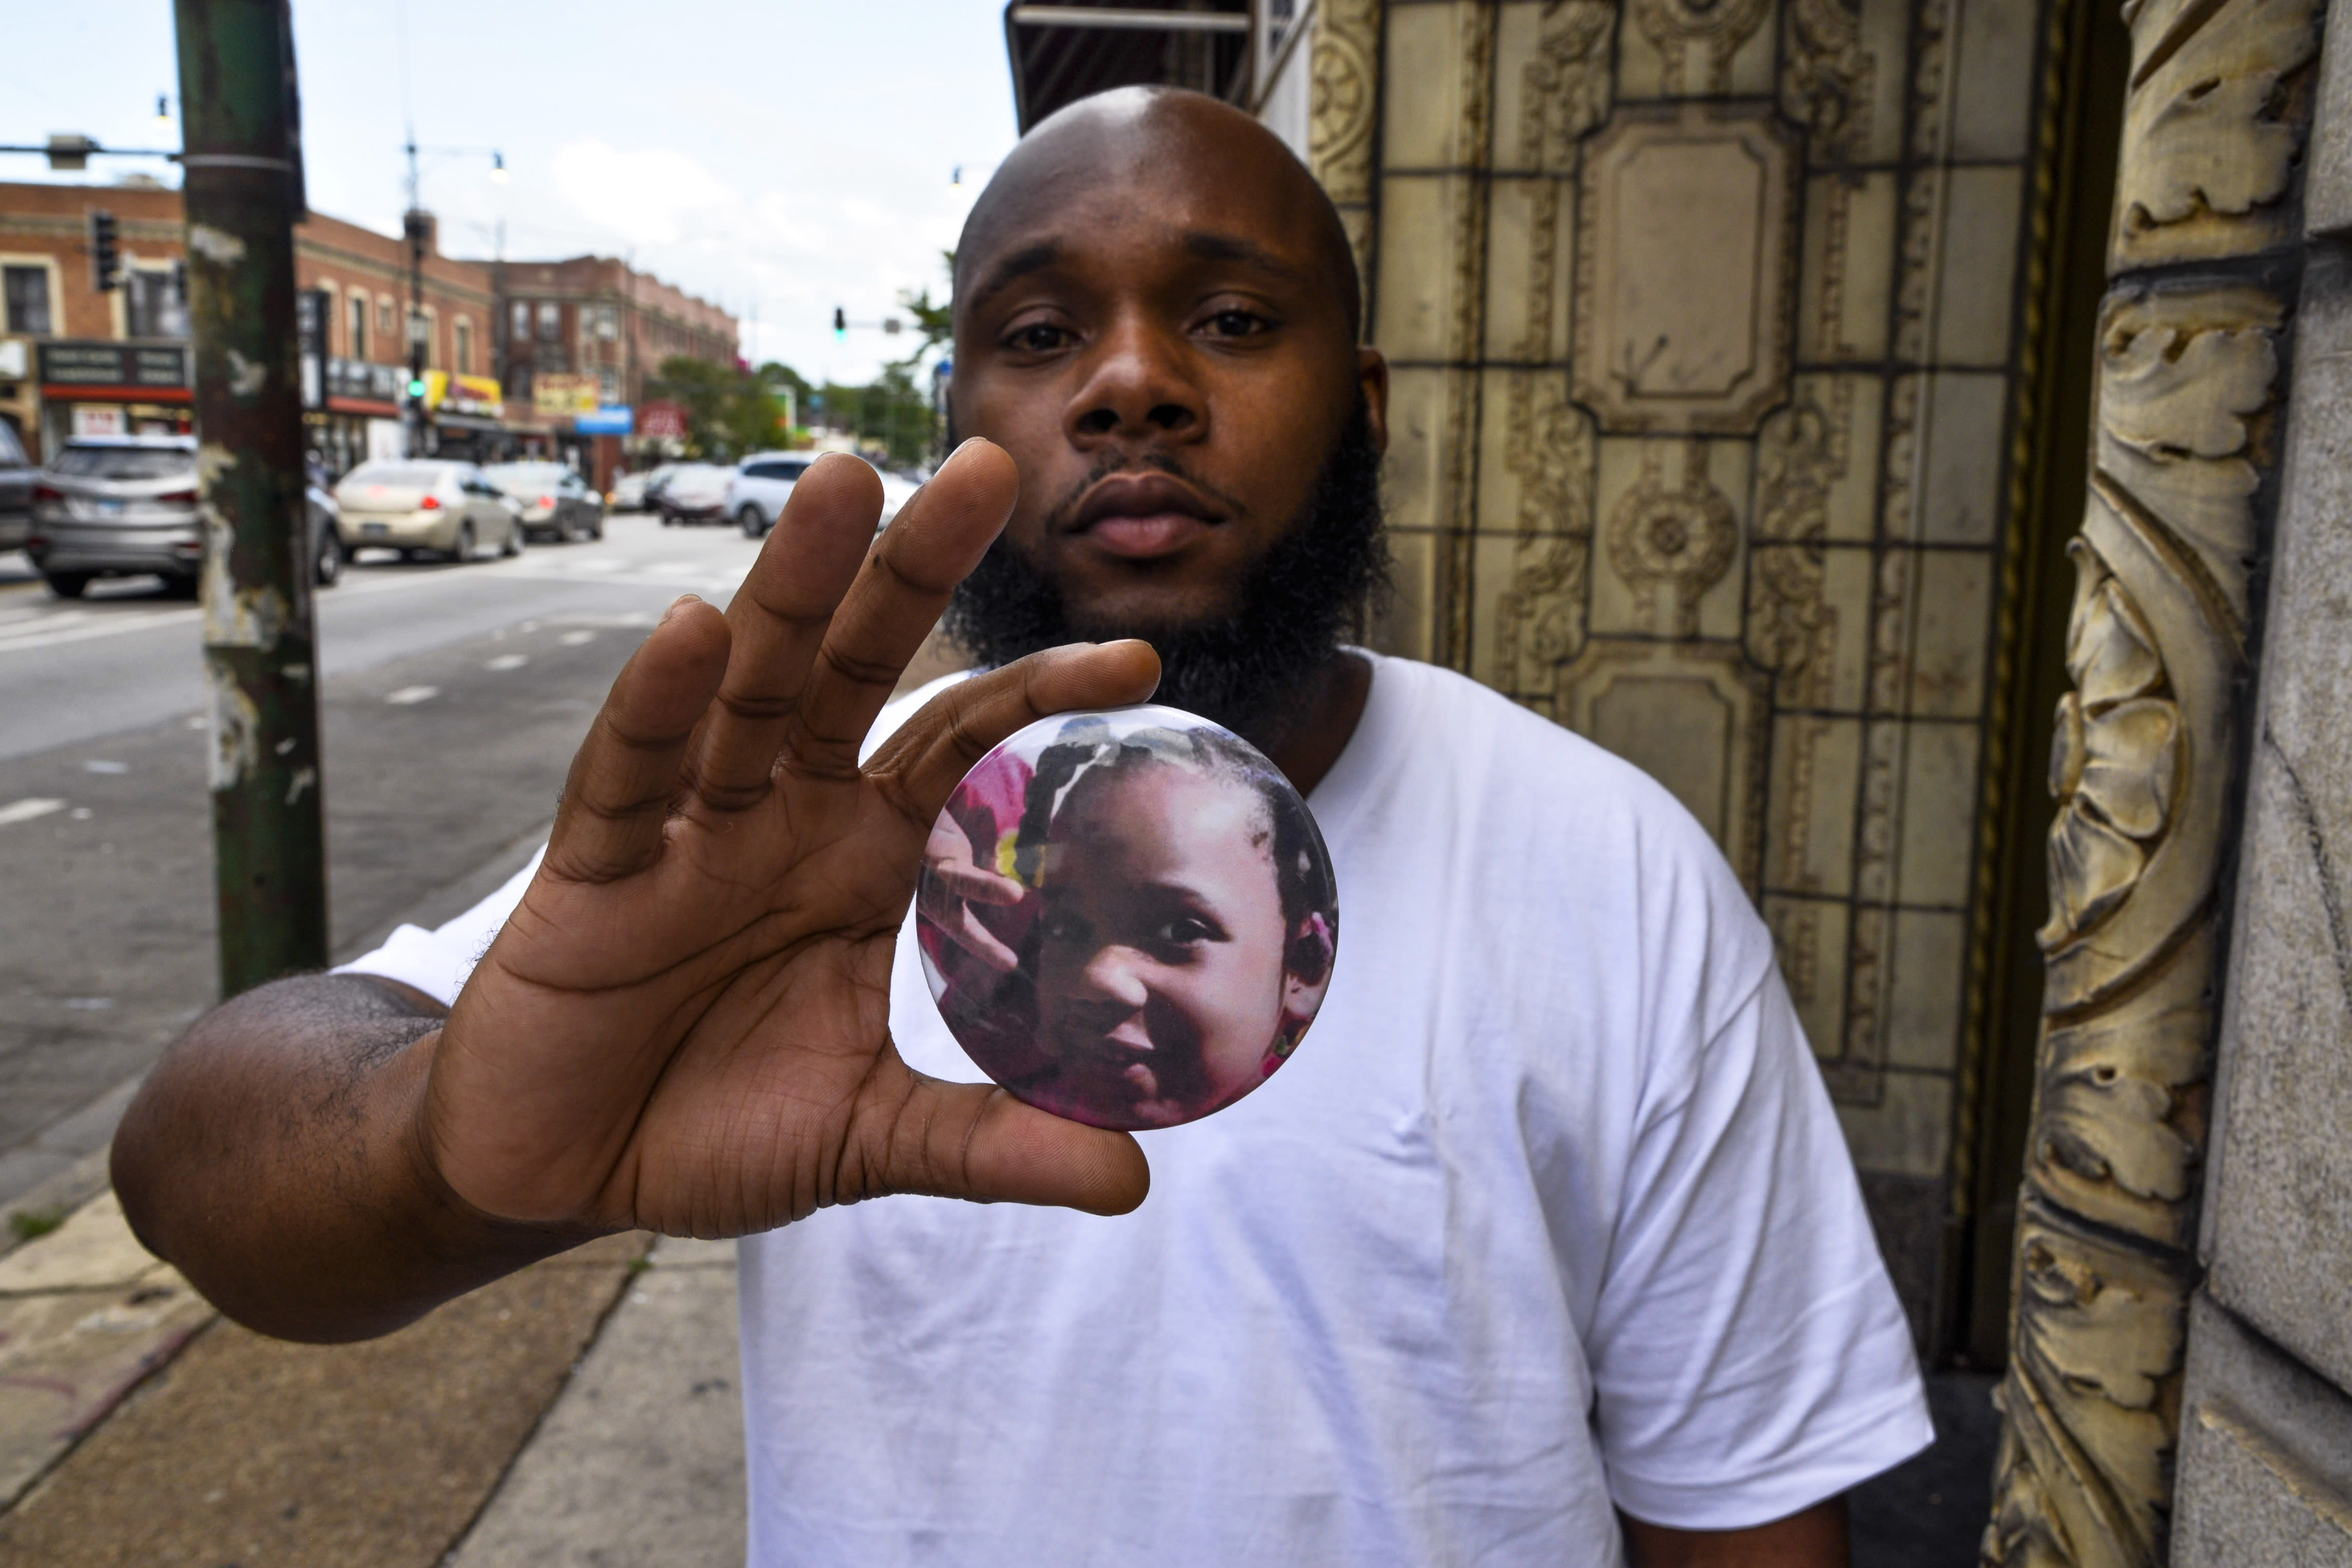 Nathan Wallace stands outside of his home holding a button showing his daughter, Natalia Wallace, on Monday, Aug. 3, 2020, in Chicago. Natalia, 7, was killed on the west side of Chicago on July 4, 2020. (AP Photo/Matt Marton)